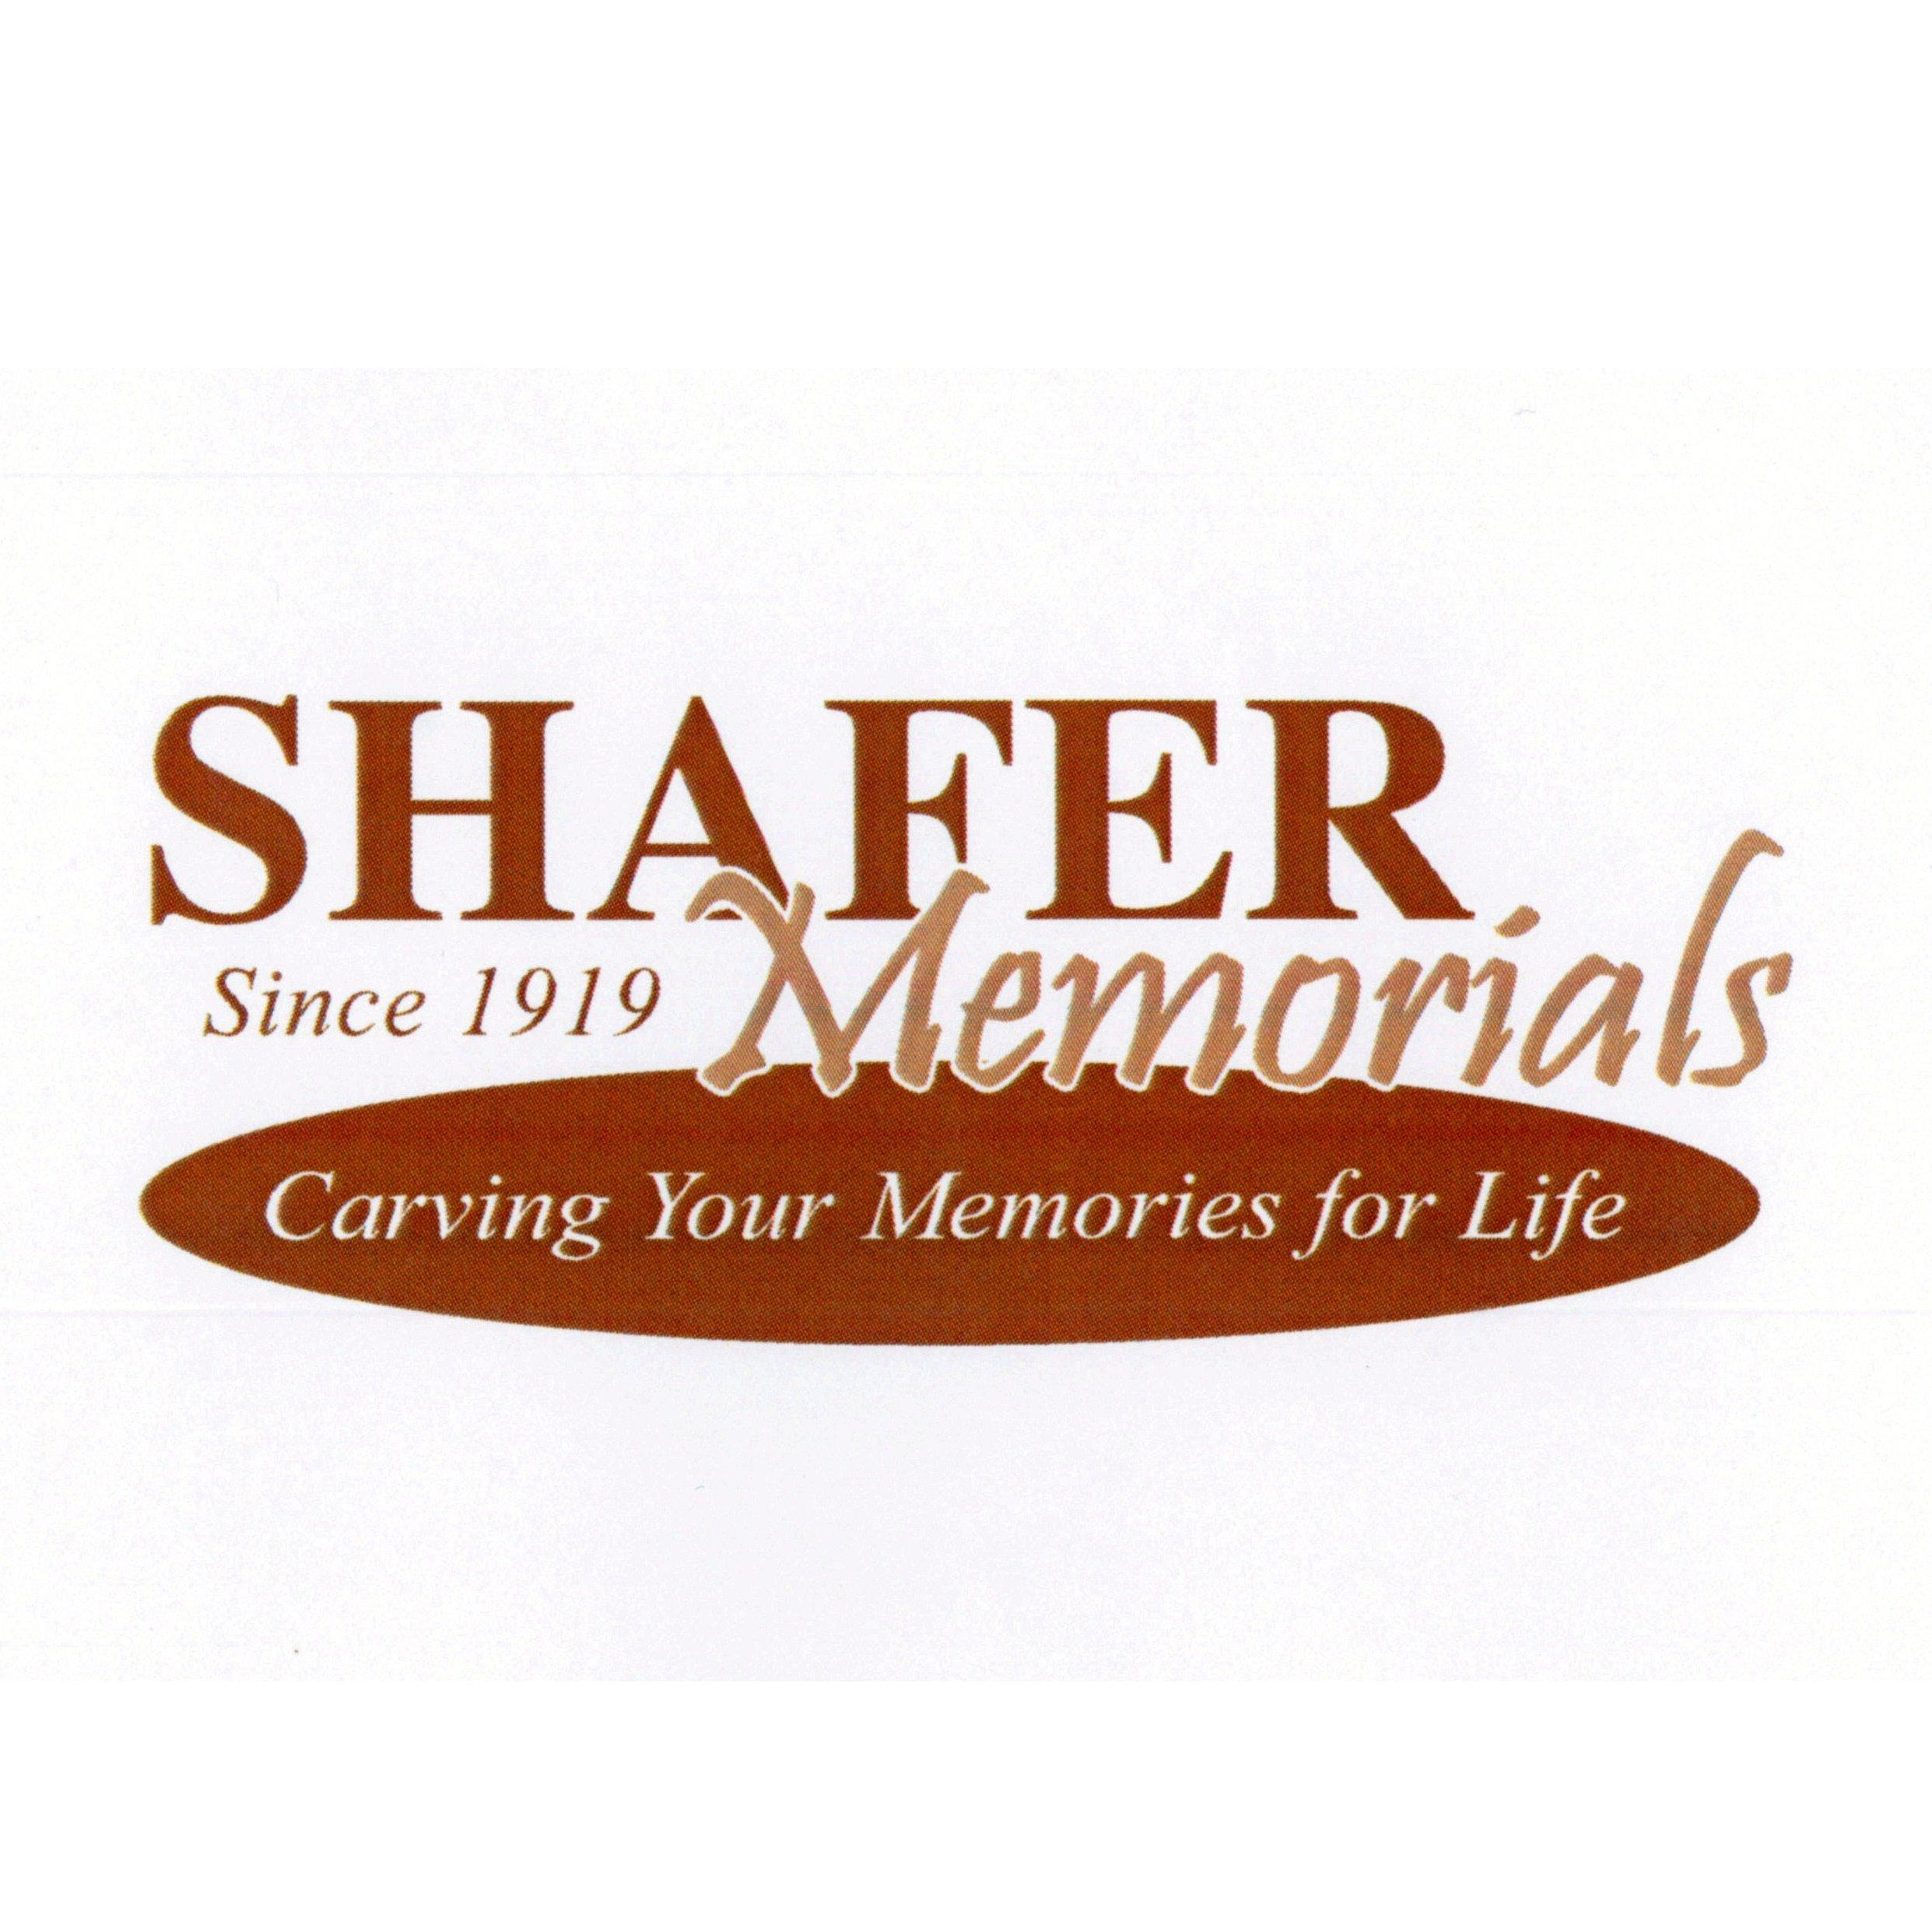 Mitchell Sd Funeral Homes